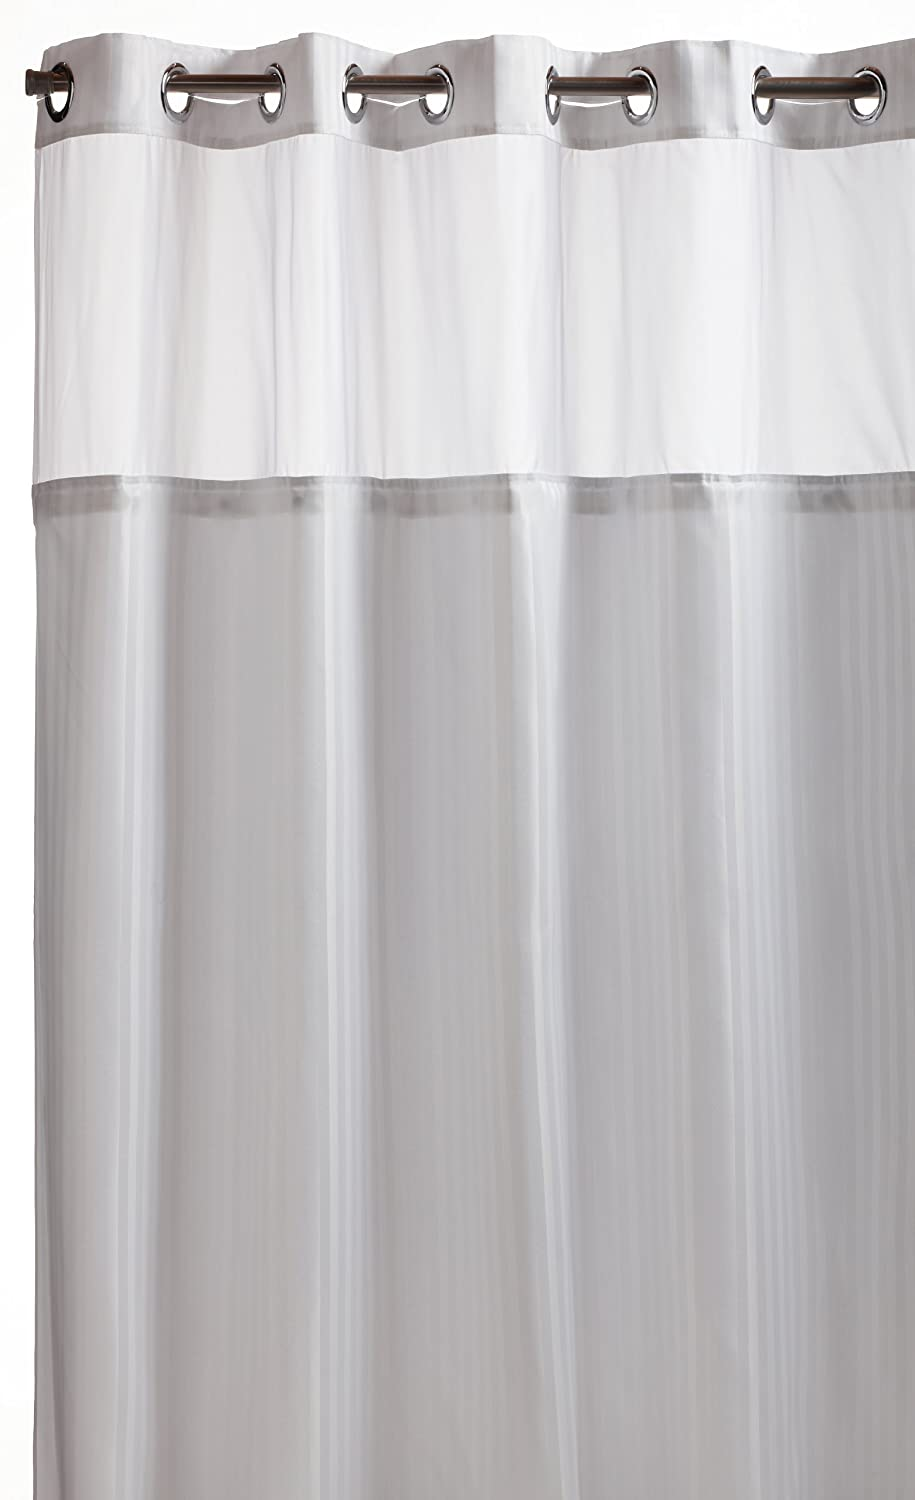 Hookless fabric shower curtain with built in liner taupe diamond pique - Amazon Com Hookless Rbh53my306 Herringbone Built In Fabric Liner Fabric Shower Curtain White Home Kitchen